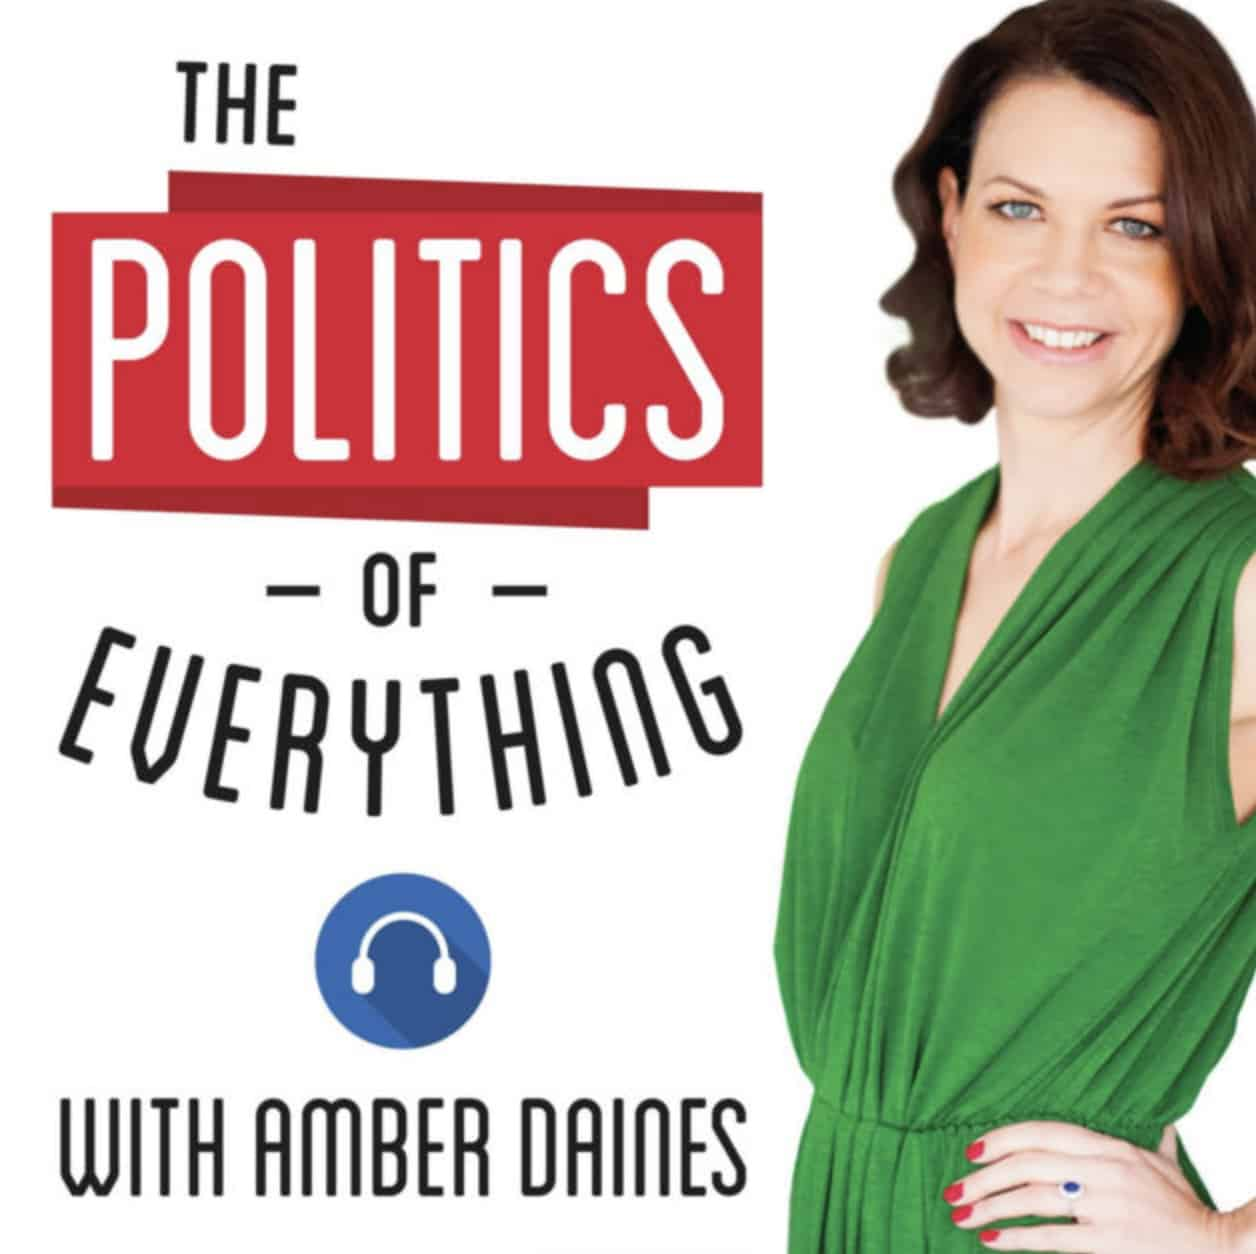 the politics of everything